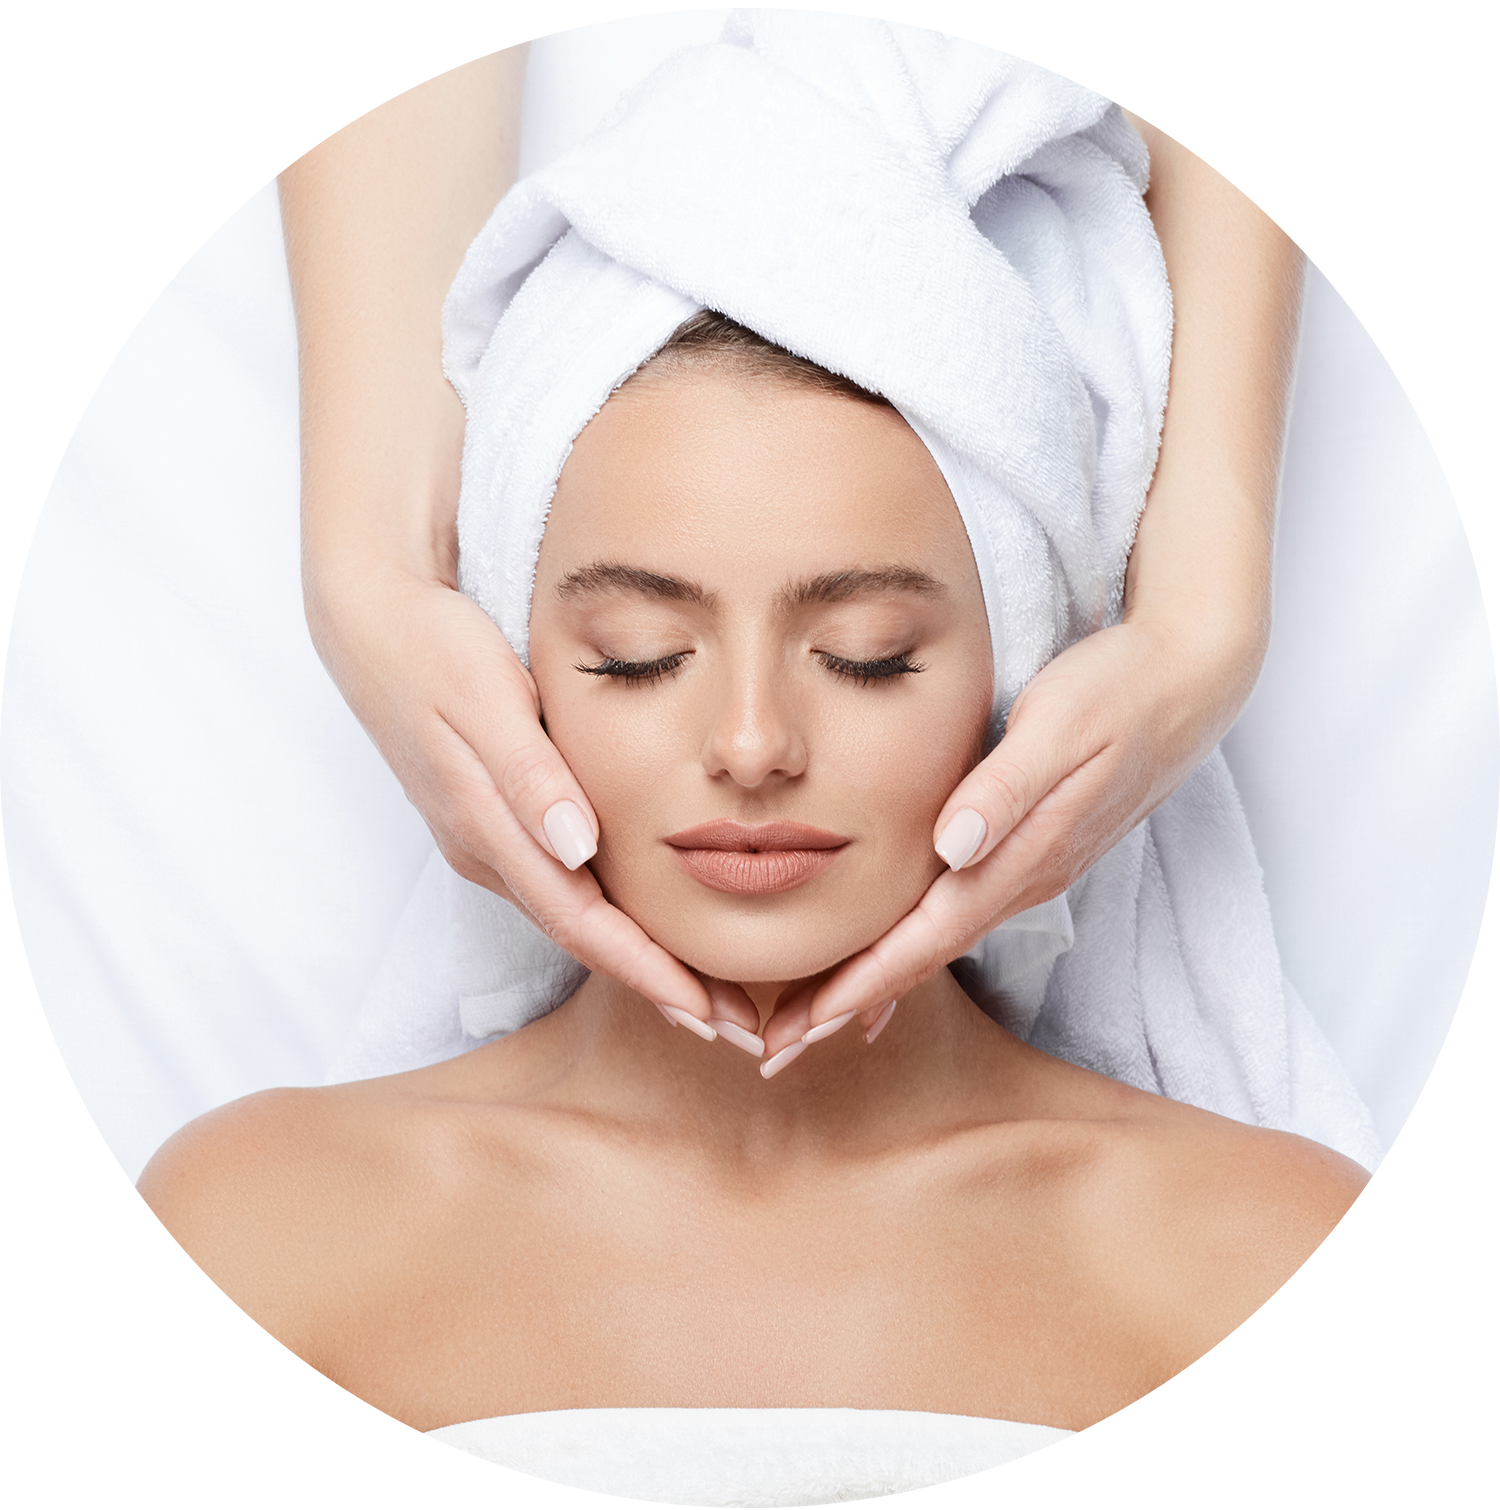 Relaxation Facial - £50 - Available at Nailsea beauty room only on TuesdaysUsing local, organic, high quality products - Relax and enjoy a luxurious, indulgent massage facial.Your skin will be cleansed, polished, and toned - Then will receive the ultimate pamper with rose gold mist, serum, eye repair cream and moisturiser.